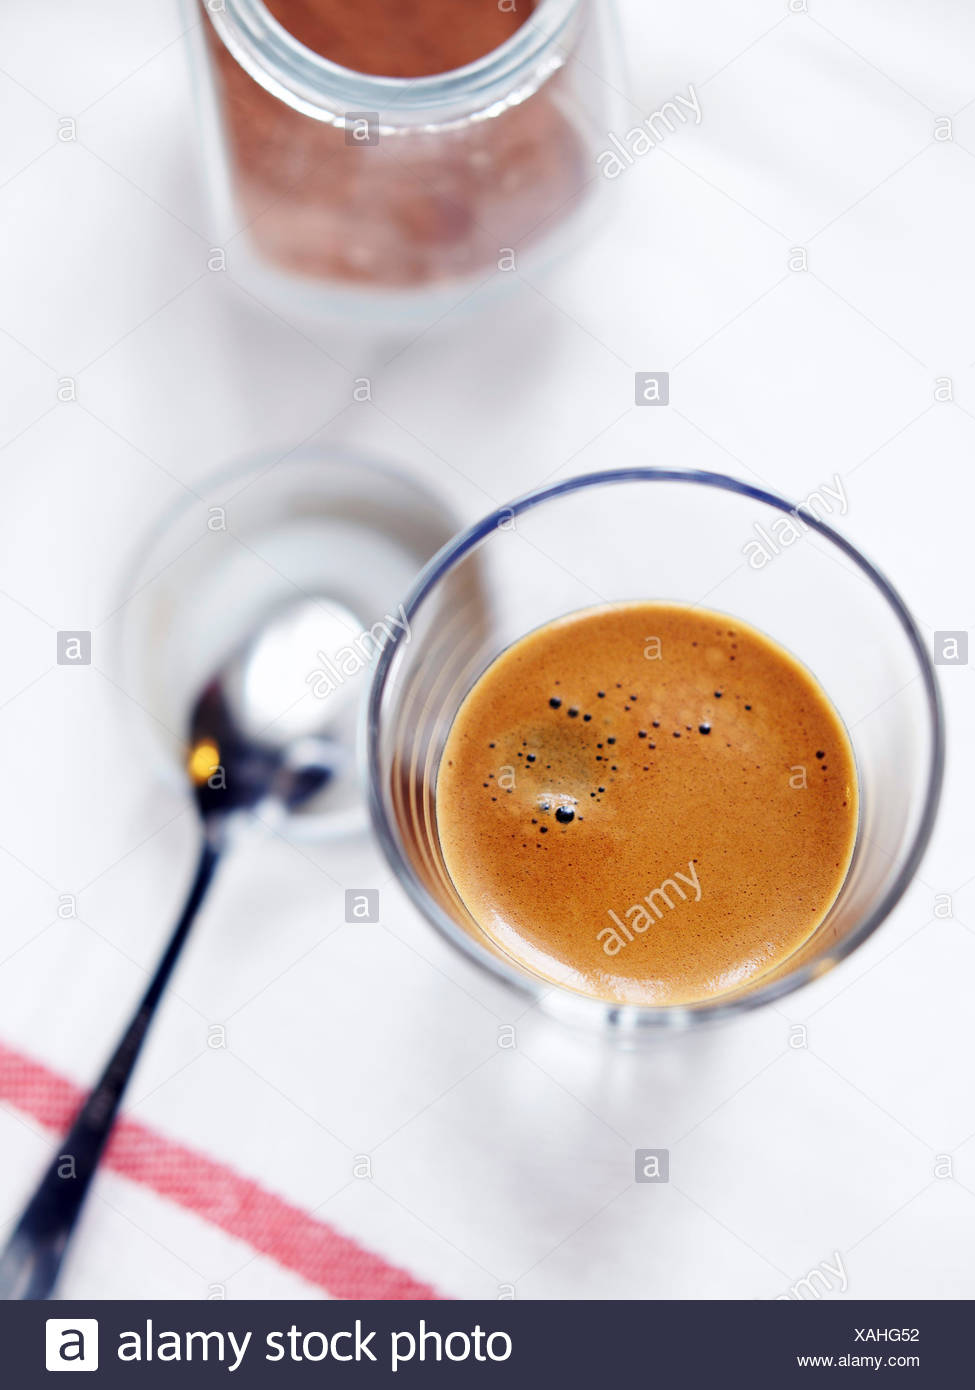 Espresso shot from the top - Stock Image